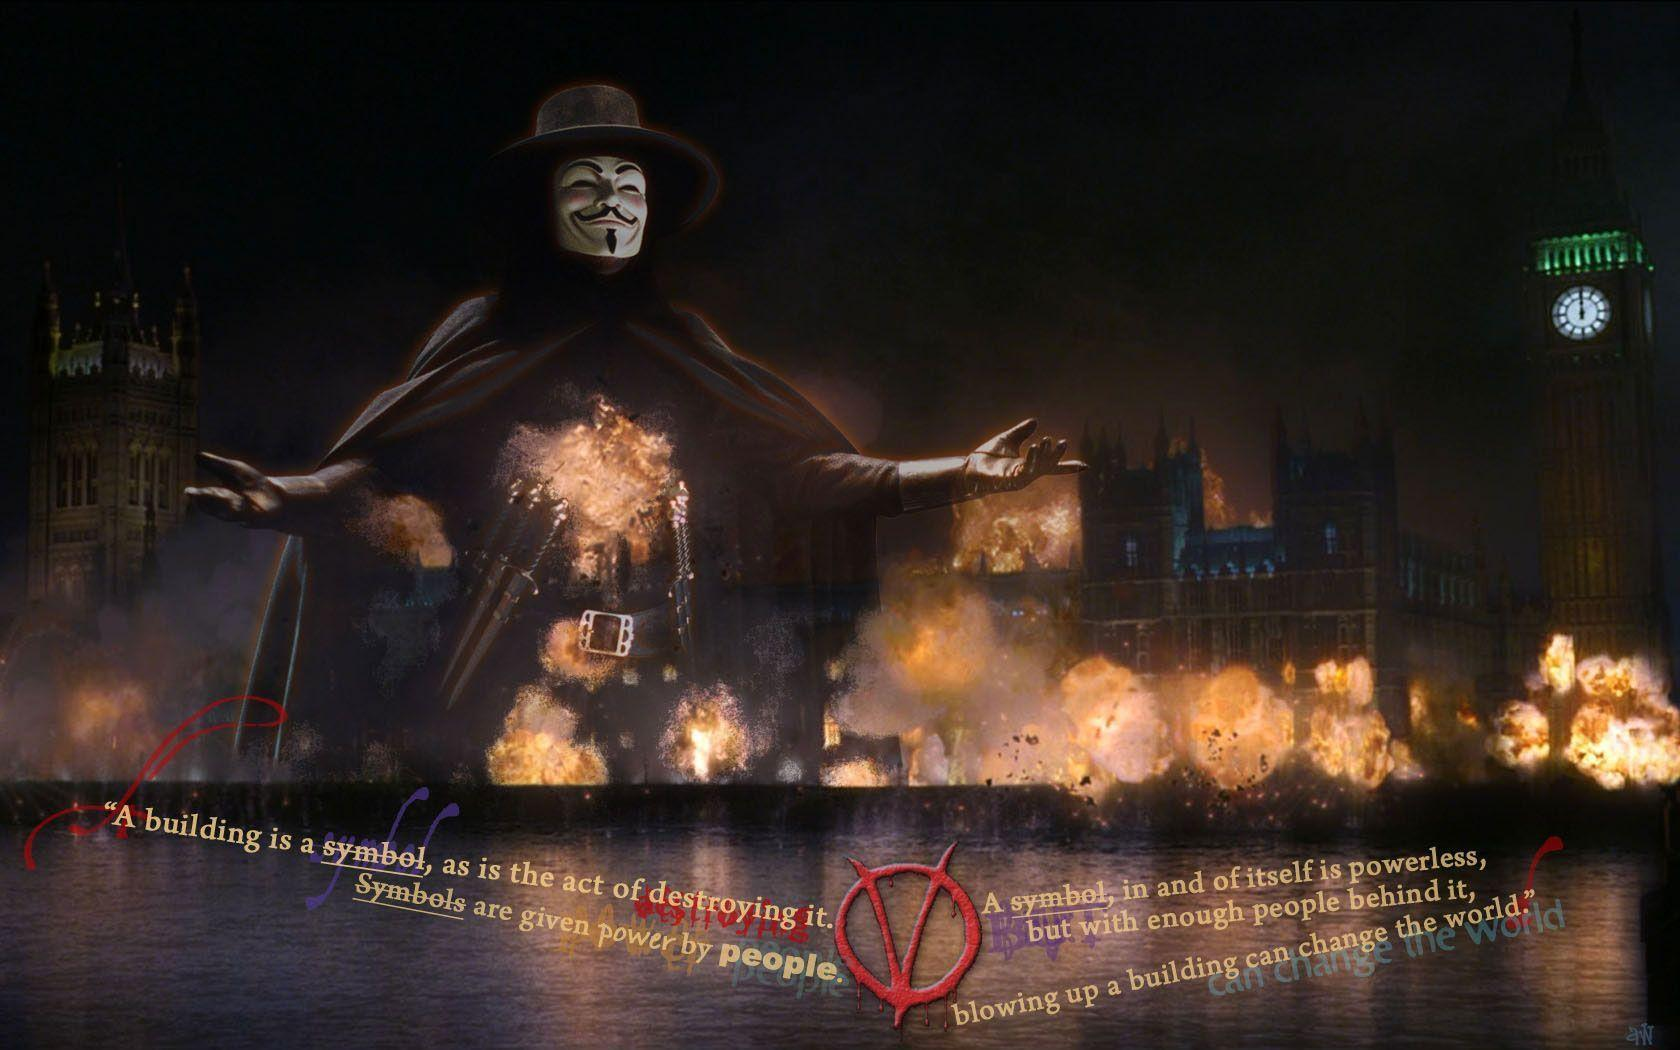 Free Wallpapers - Free v for vendetta wallpapers